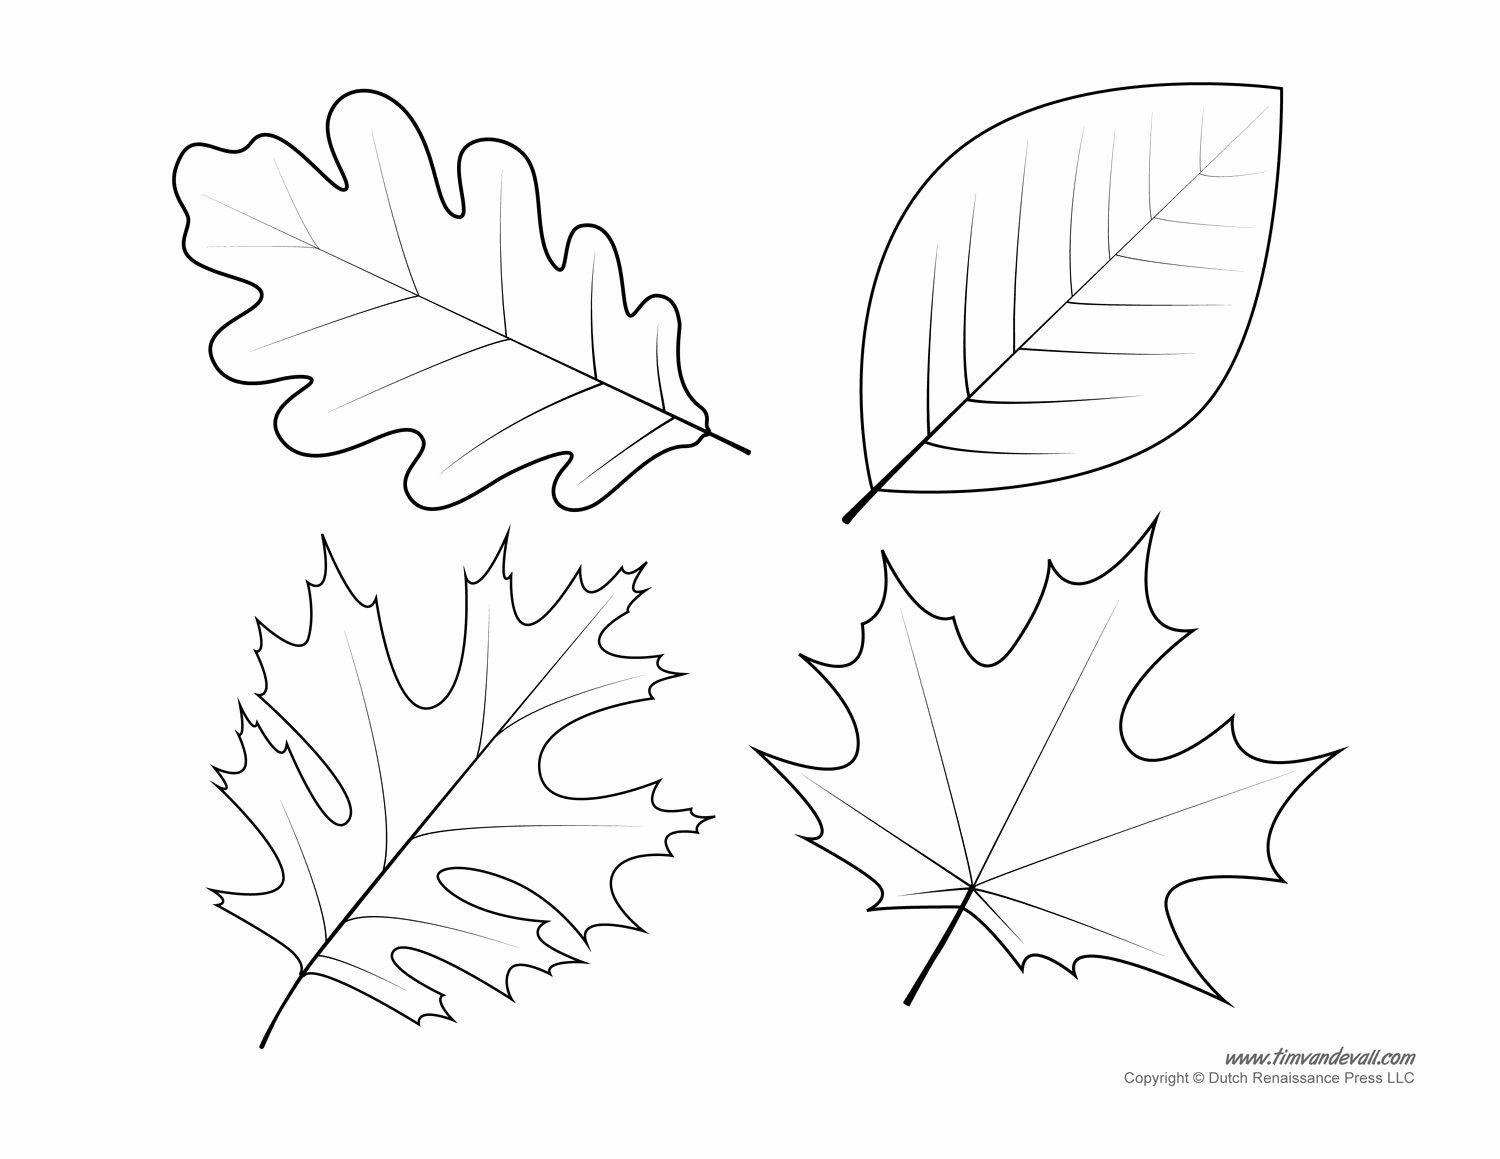 Leaf Coloring Pages Free Printable Inspirational Leaf Templates Leaf Coloring Pages For Leaf Template Printable Fall Leaves Coloring Pages Leaf Coloring Page